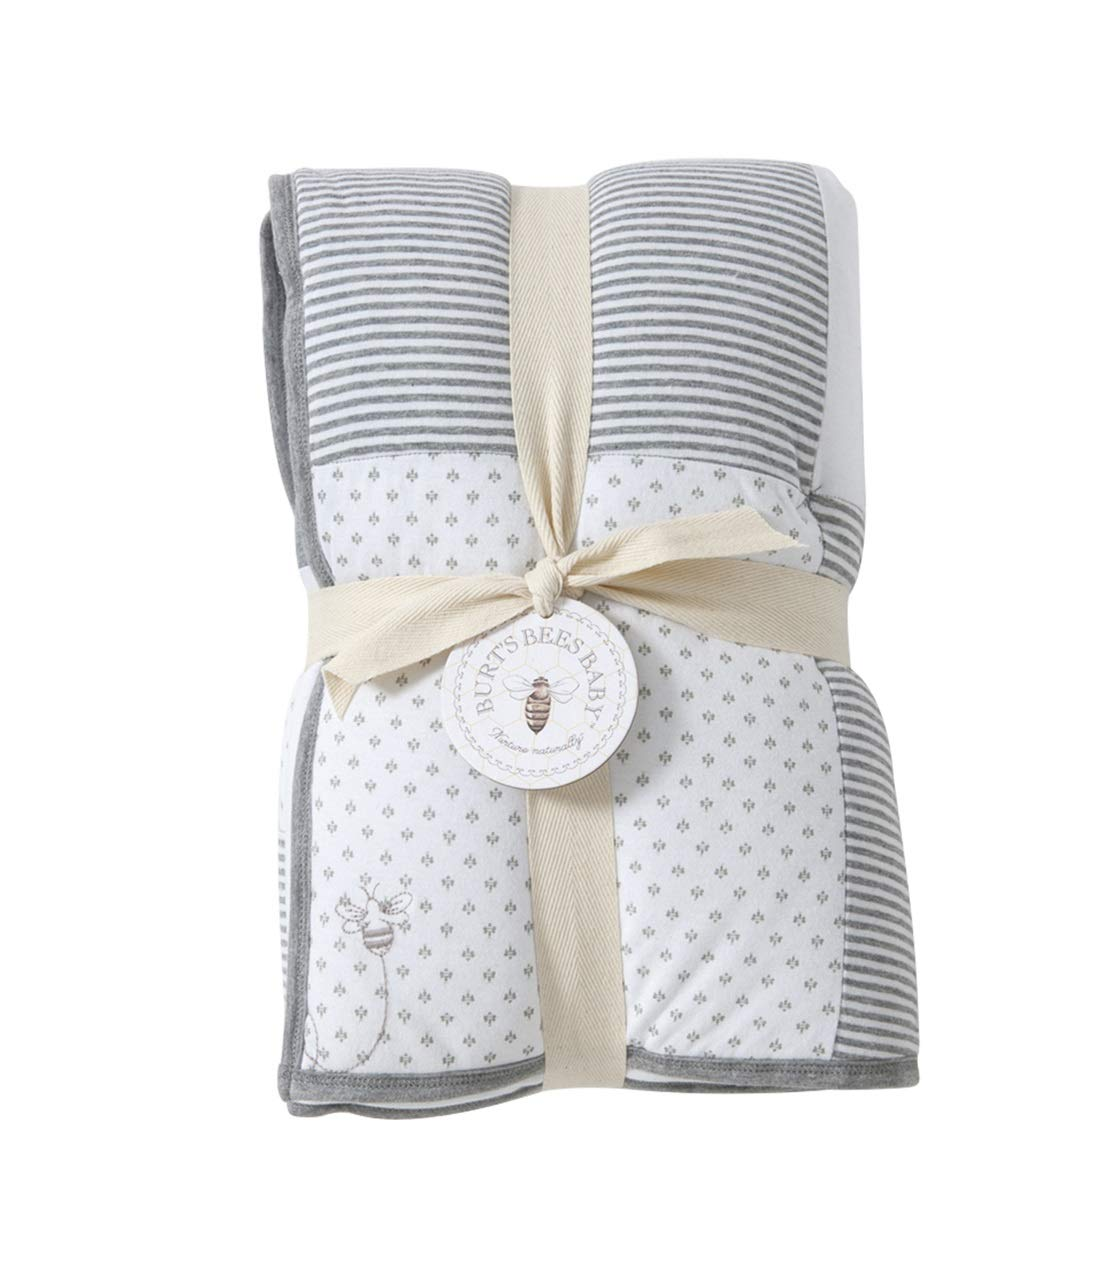 Burt's Bees Baby - Reversible Quilt Baby Blanket, Dottie Bee Print, 100% Organic Cotton and 100% Polyester Fill